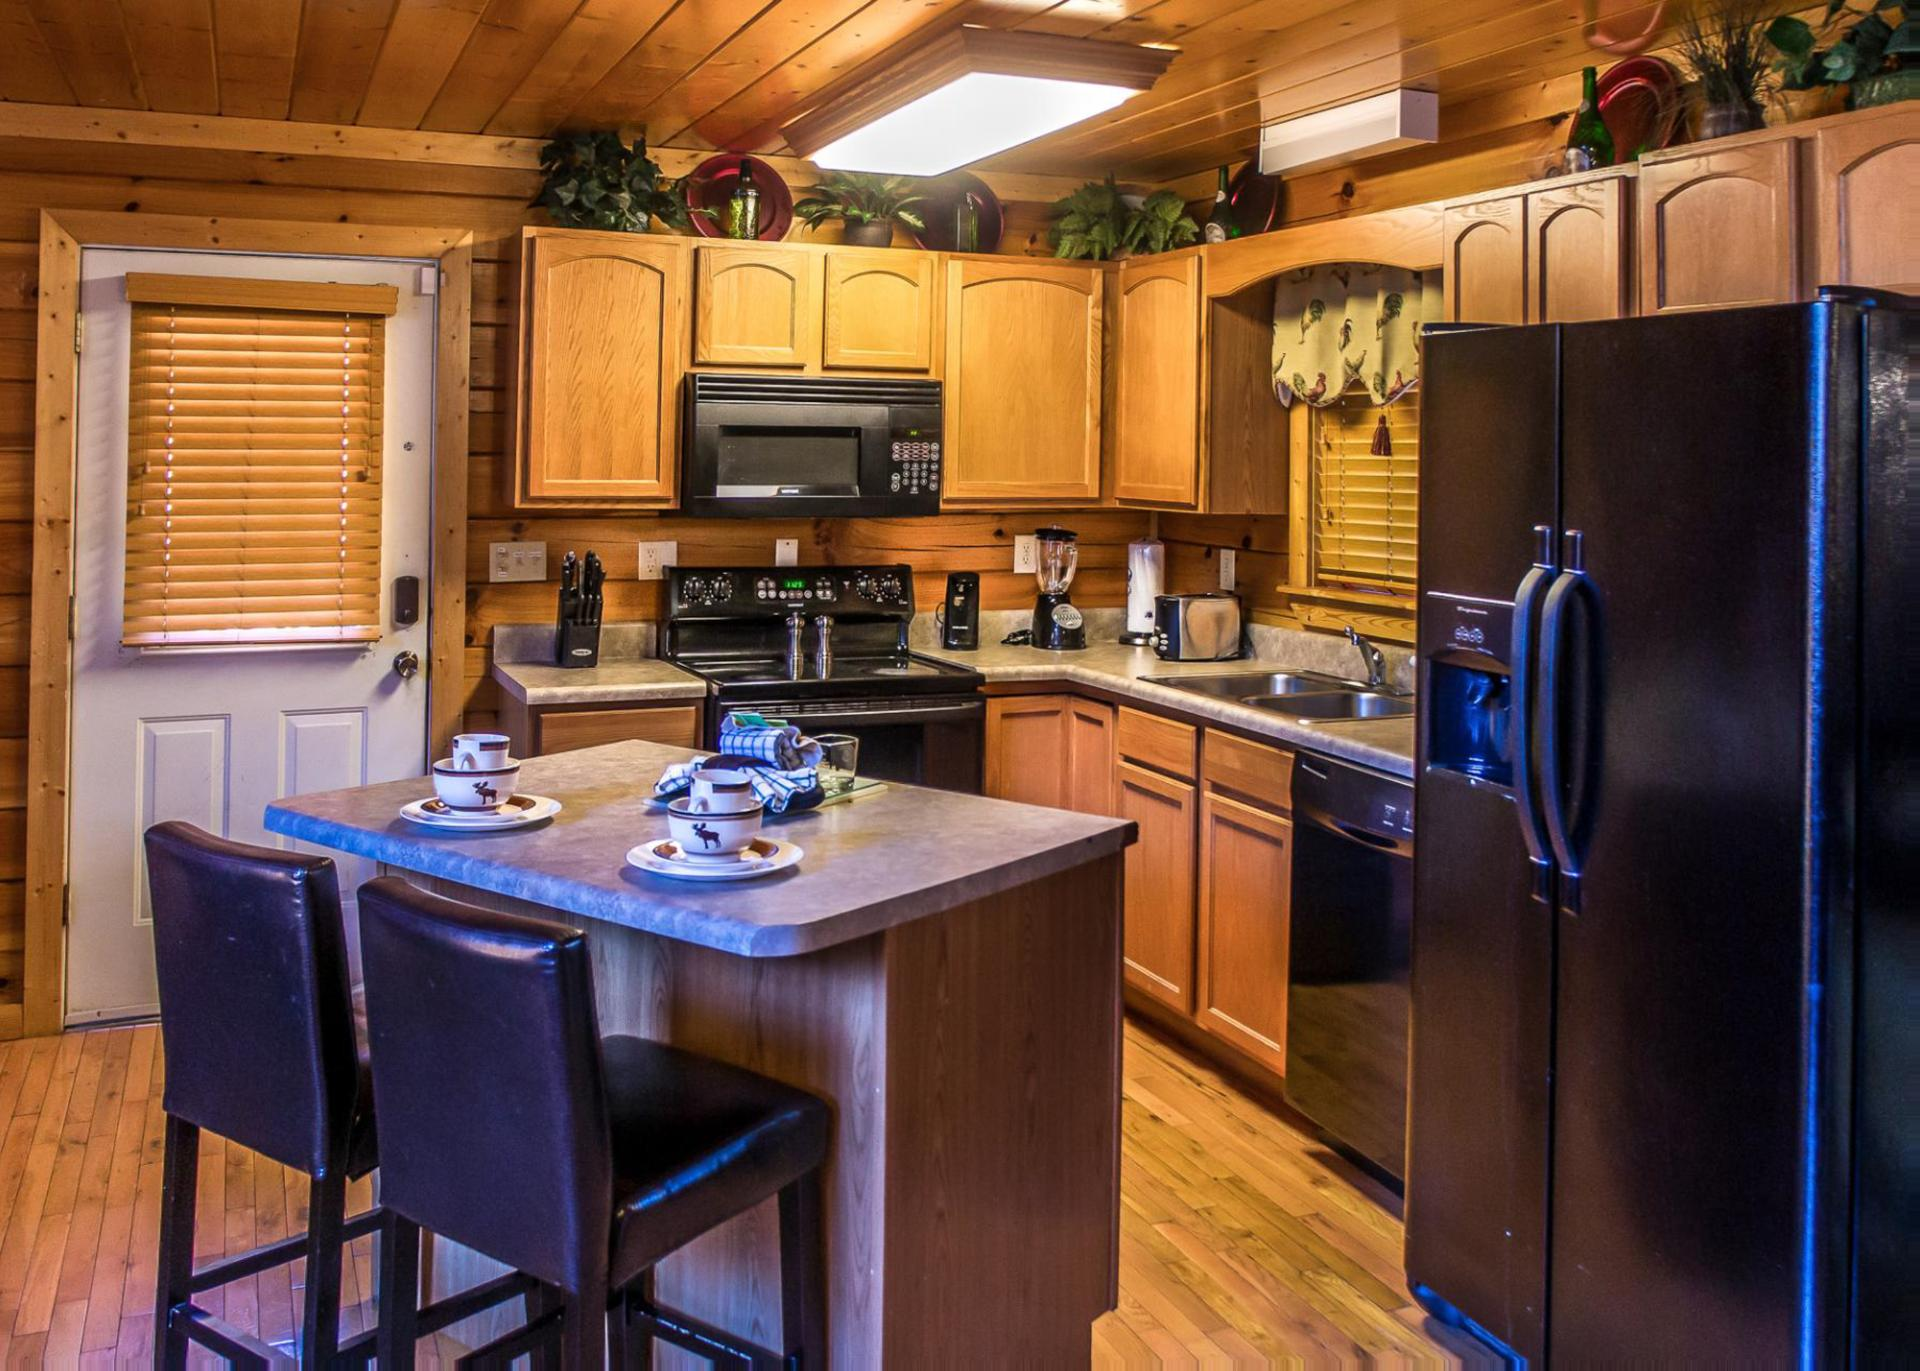 Simple Elegance Is An Impressive Six Bedroom Luxury Cabin Only Minutes From  Downtown Pigeon Forge, Making It The Perfect Cabin For Your Family Or Large  ...